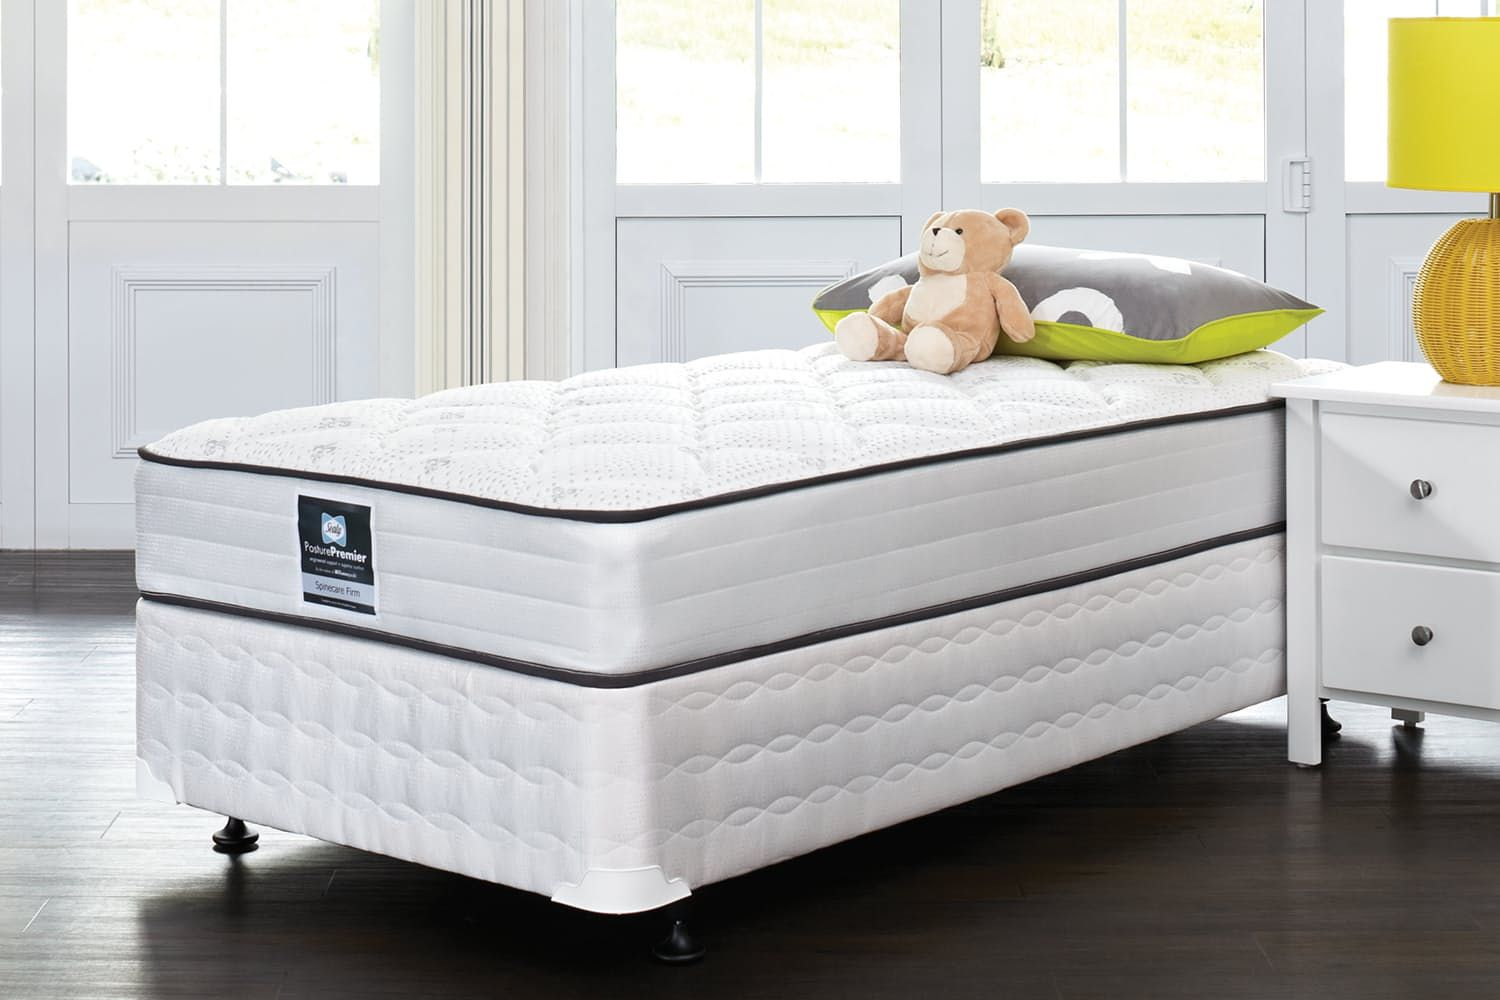 Spinecare Firm King Single Bed by Sealy King single bed